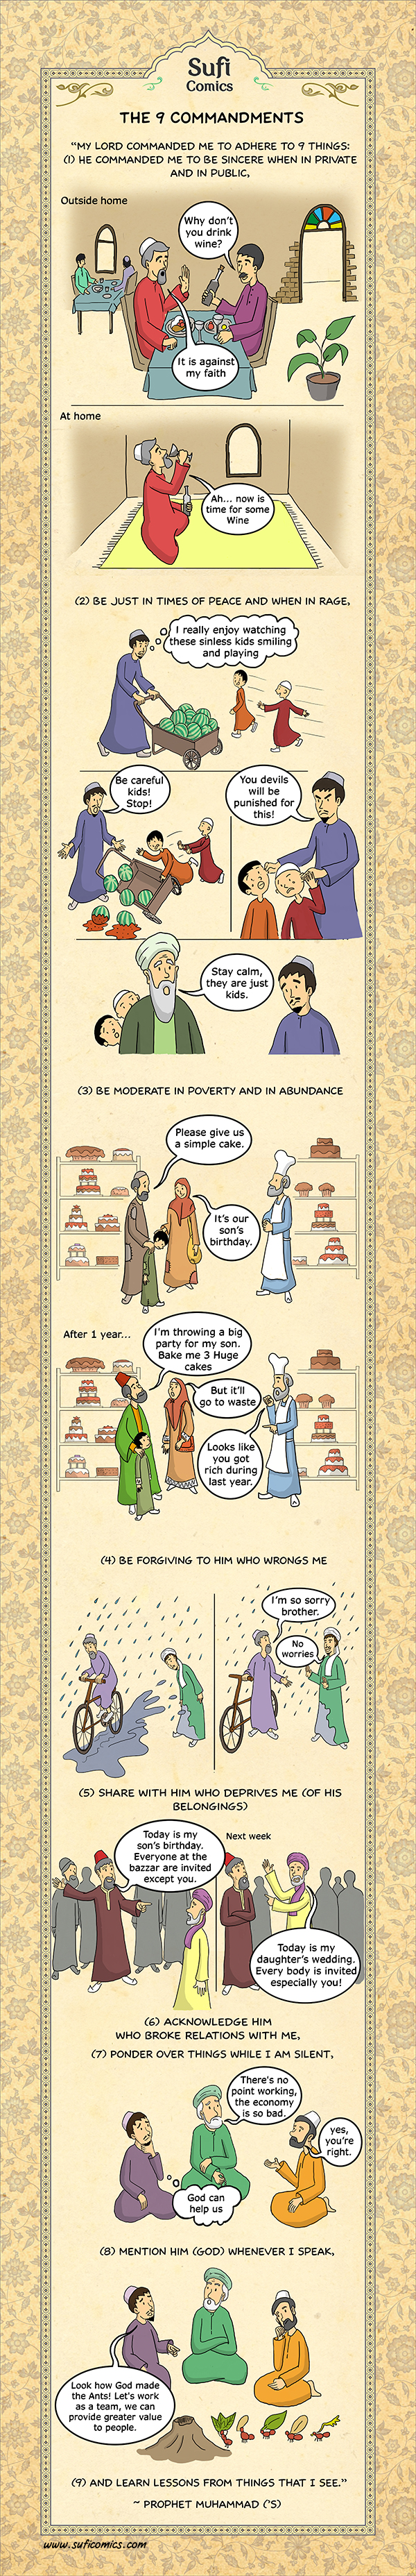 sufi-comics-the-9-commandments